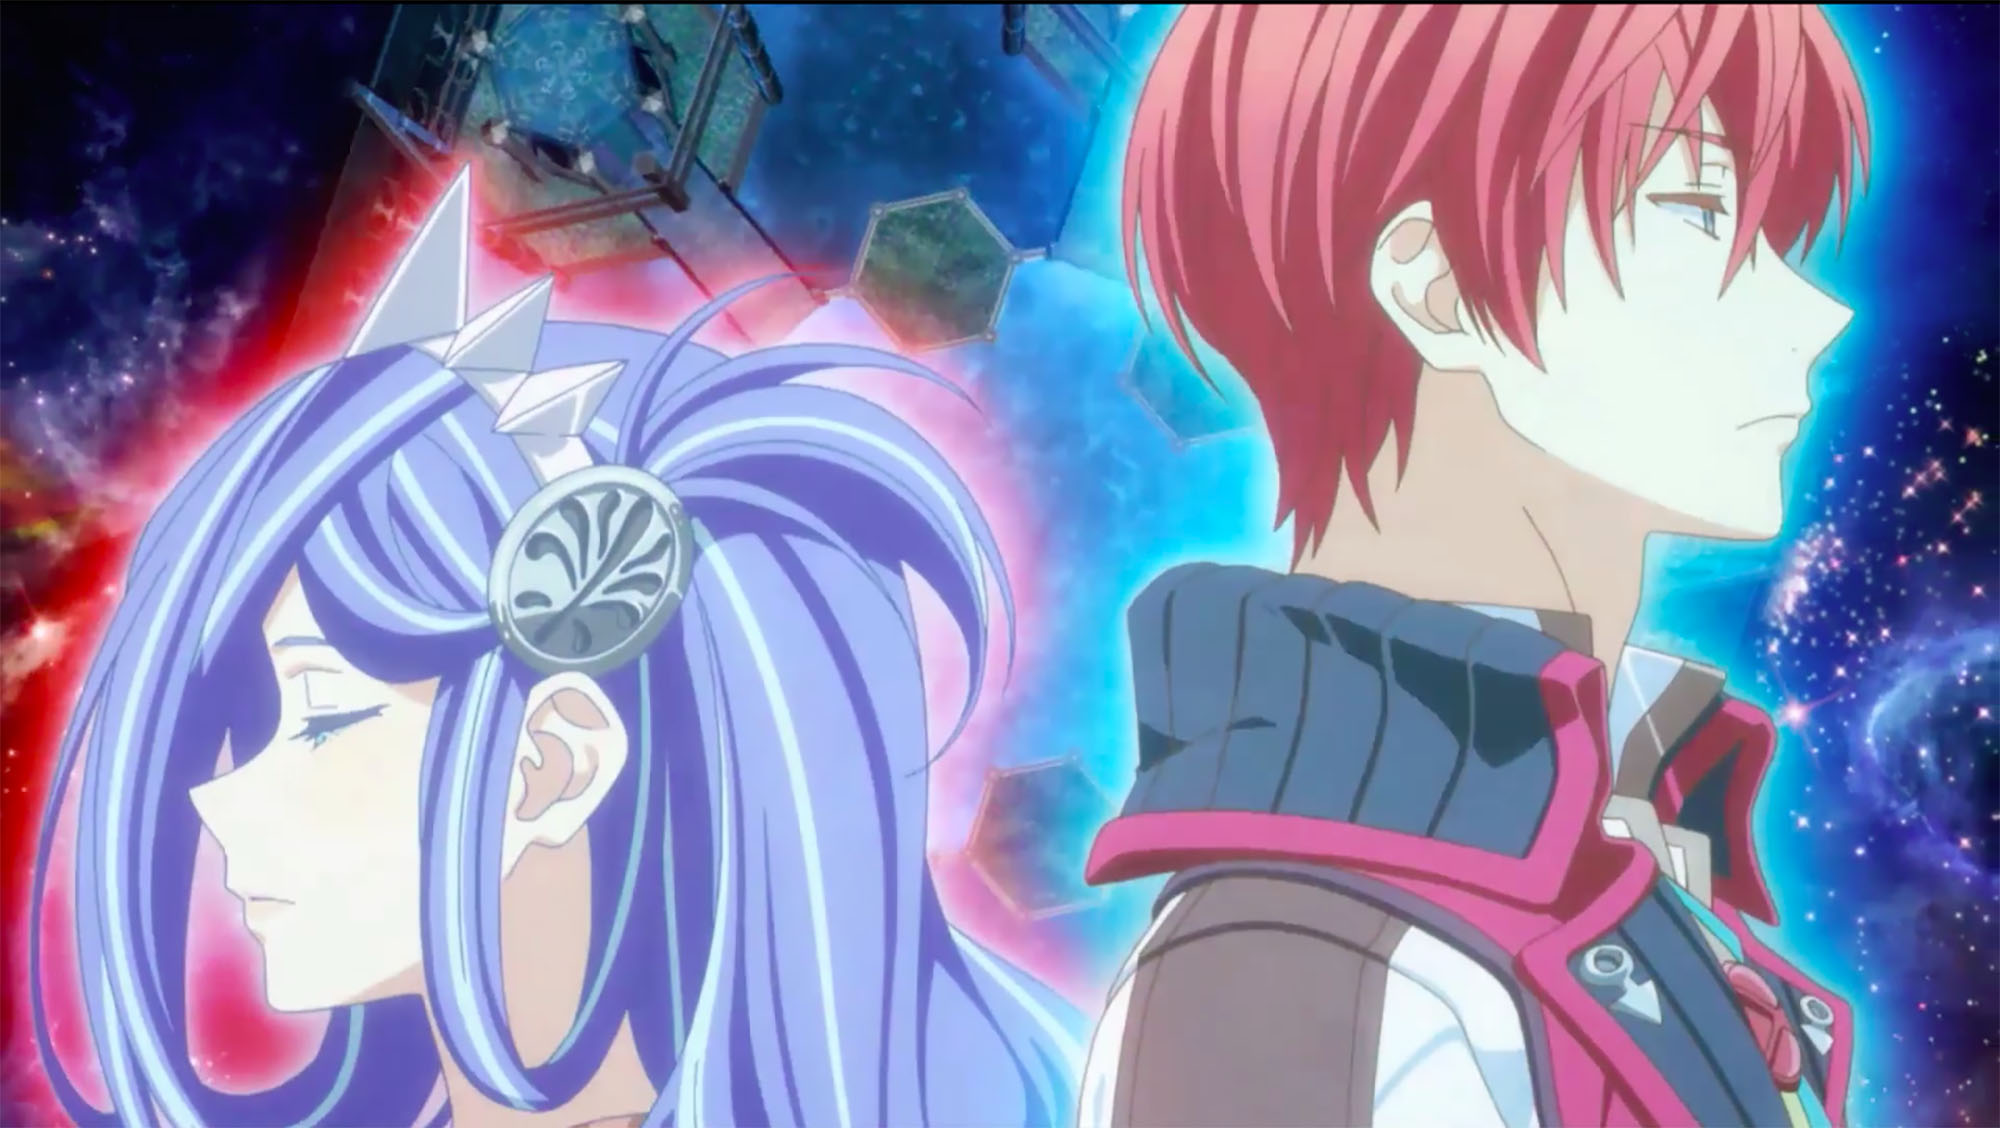 Ys 8: Lacrimosa of Dana review